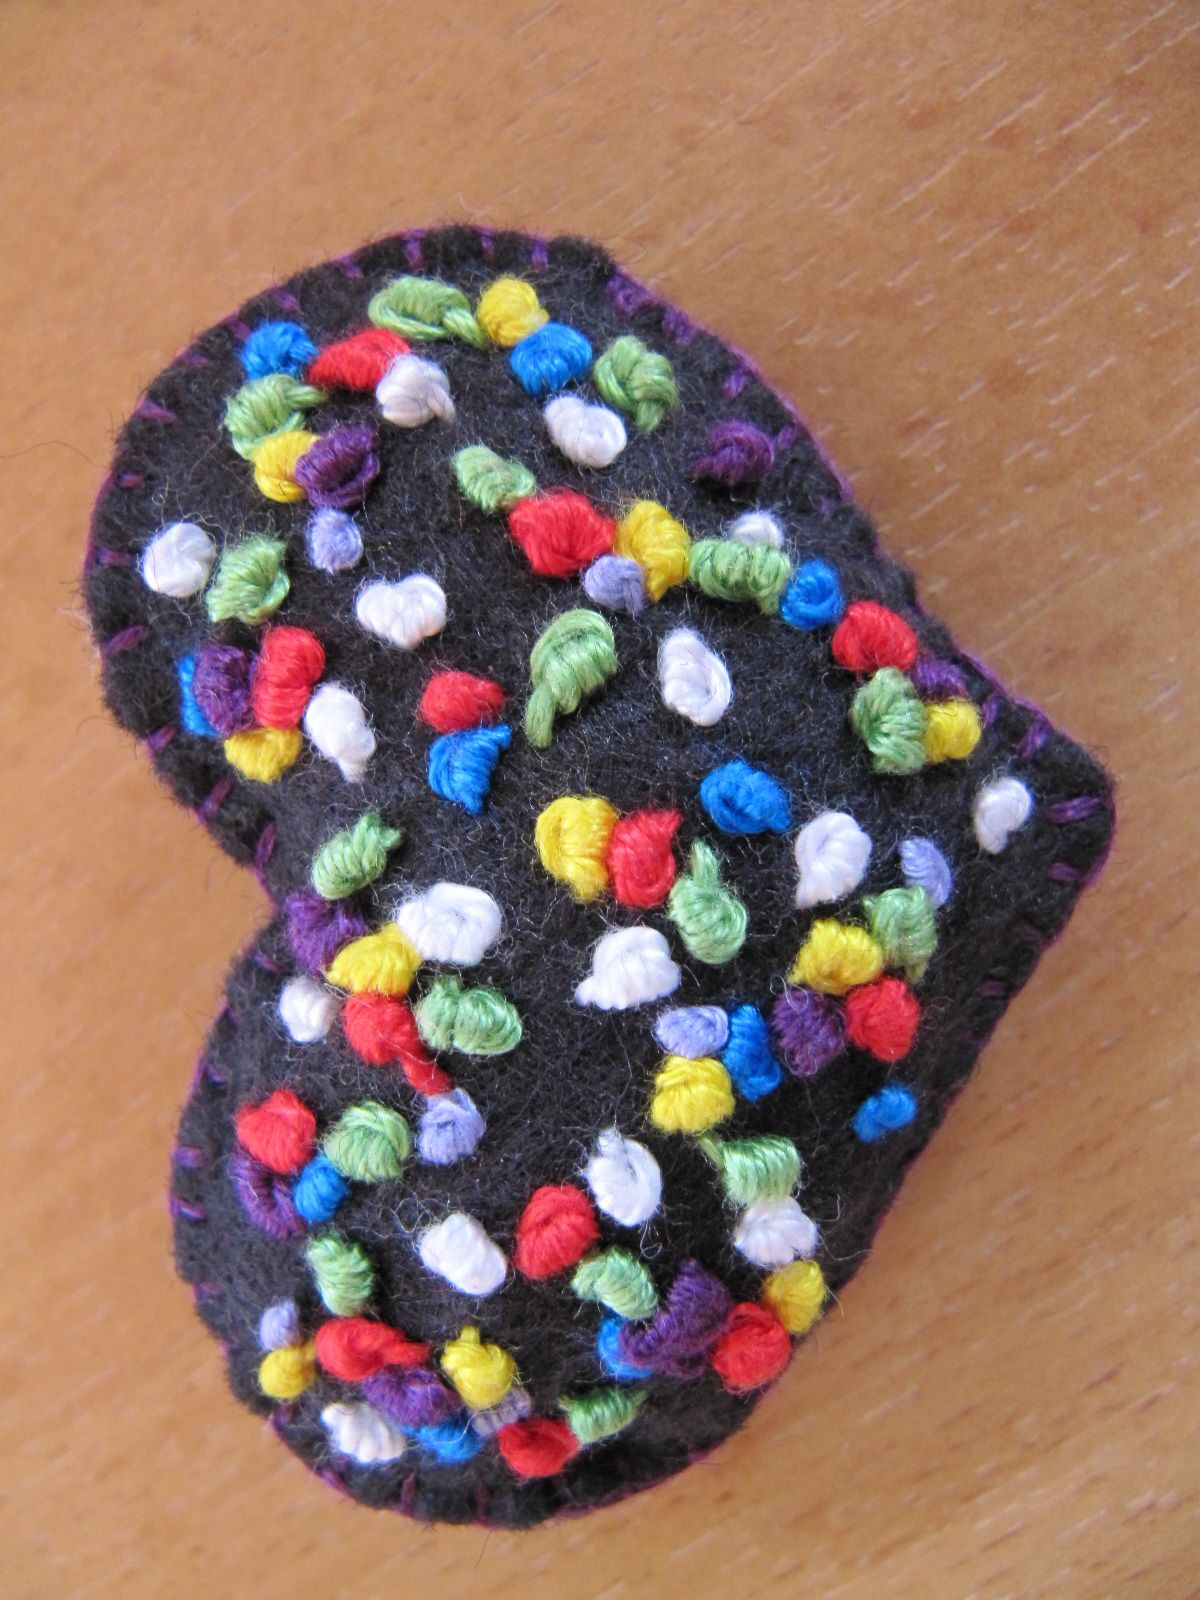 Little handmade padded black felt brooch with hand stitched French knots using vintage threads.